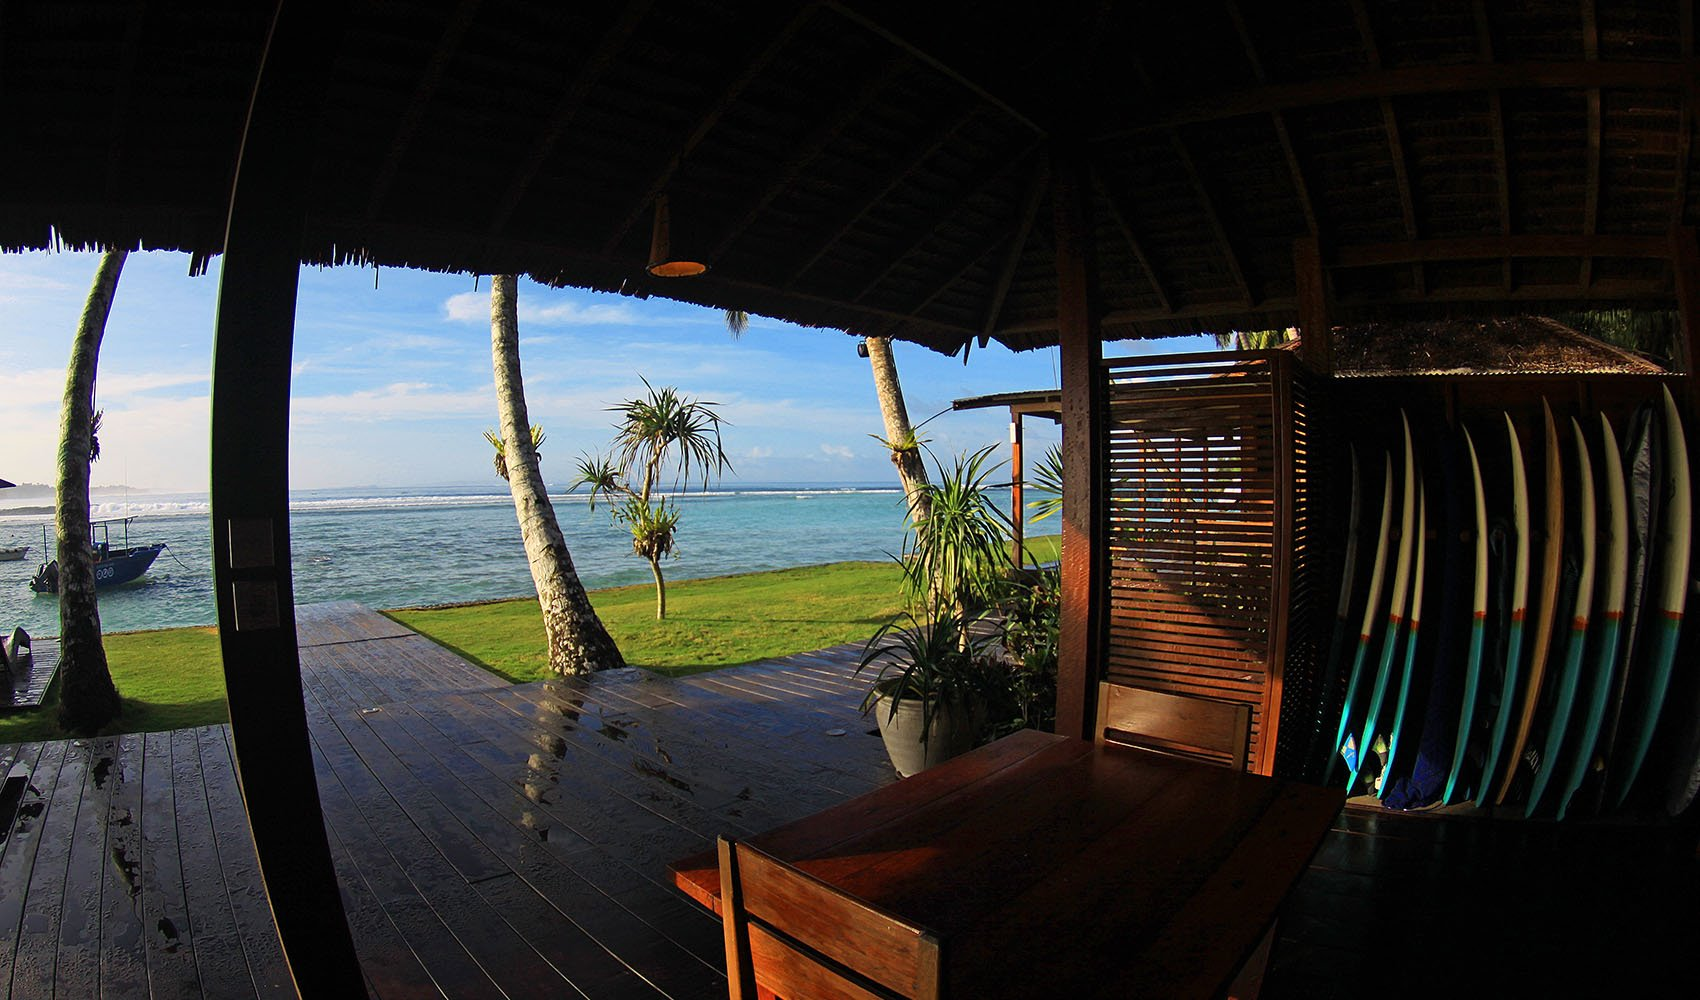 Telo_Island_Lodge_Board Shack Surf Indonesia.jpg